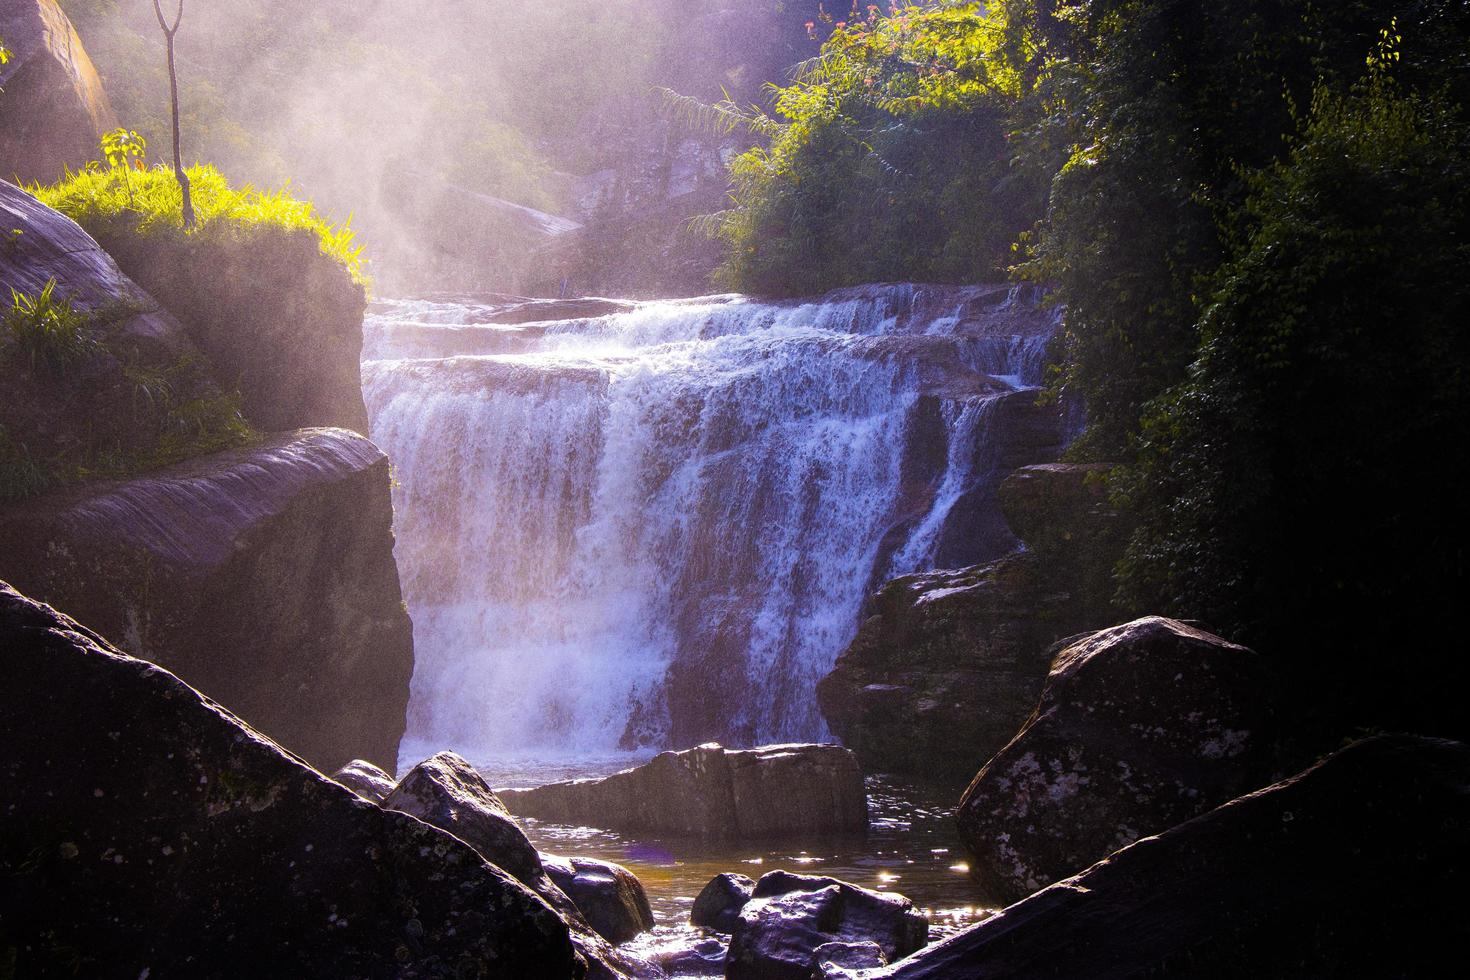 Waterfall surrounded by grass and rocks photo